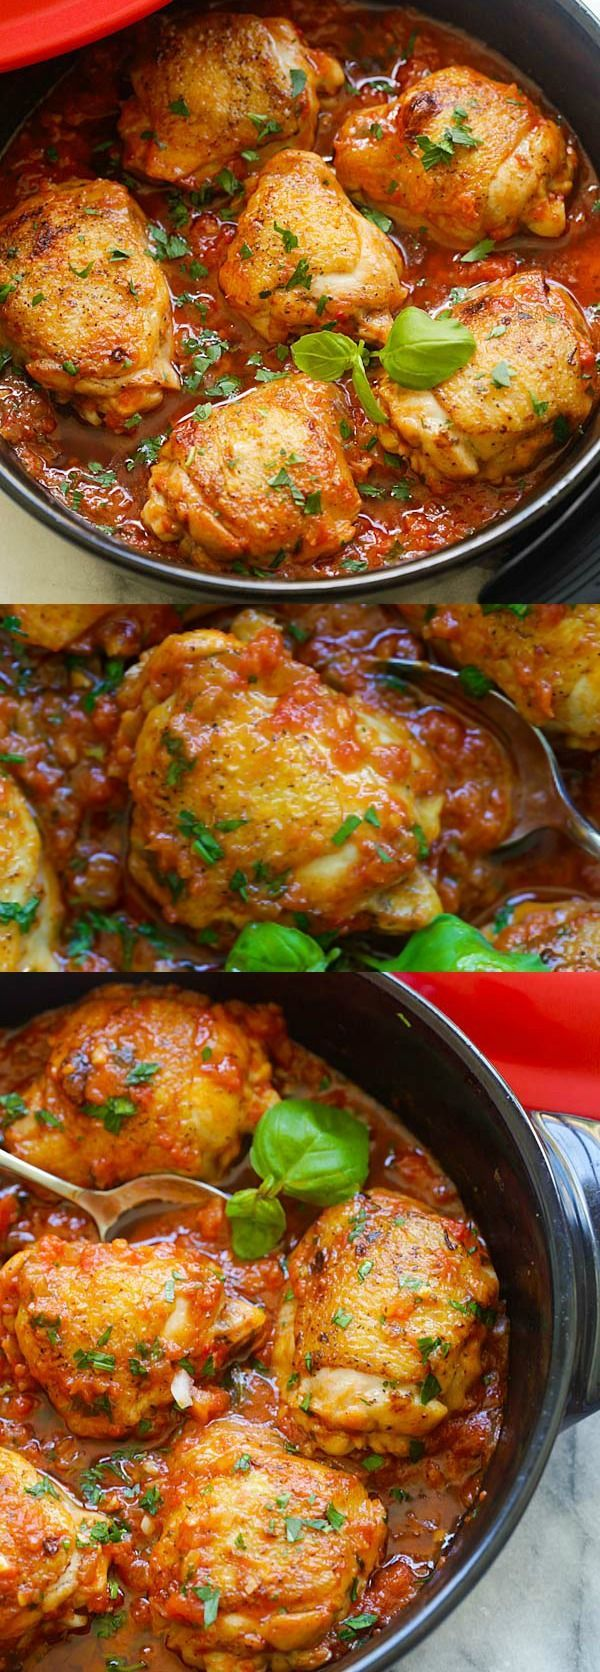 Delicious one-pot braised chicken recipe with tomato and basil sauce. Amazing weeknight meal for the family | http://rasamalaysia.com